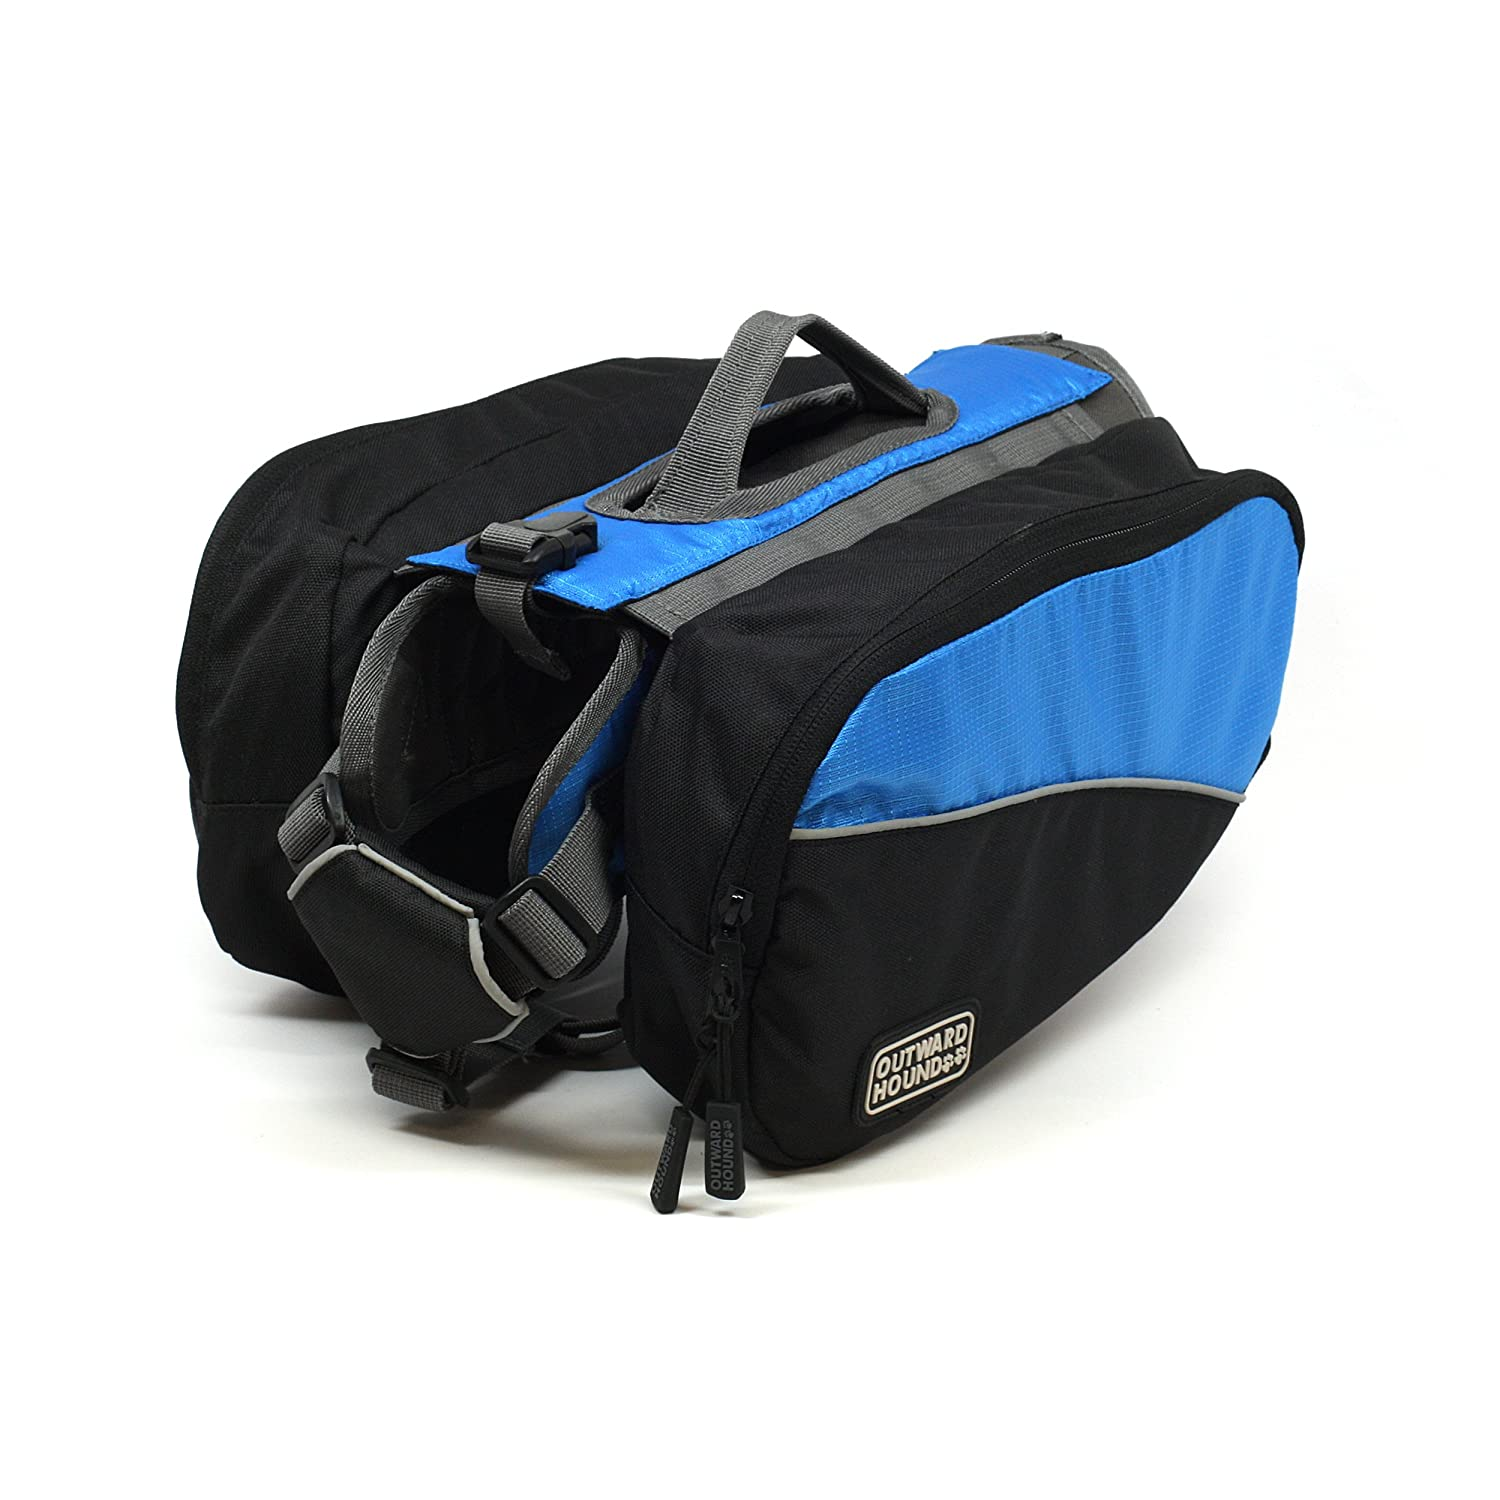 Kyjen Outward Hound 2498 Kyjen Outward Hound Backpack, Small, Blue